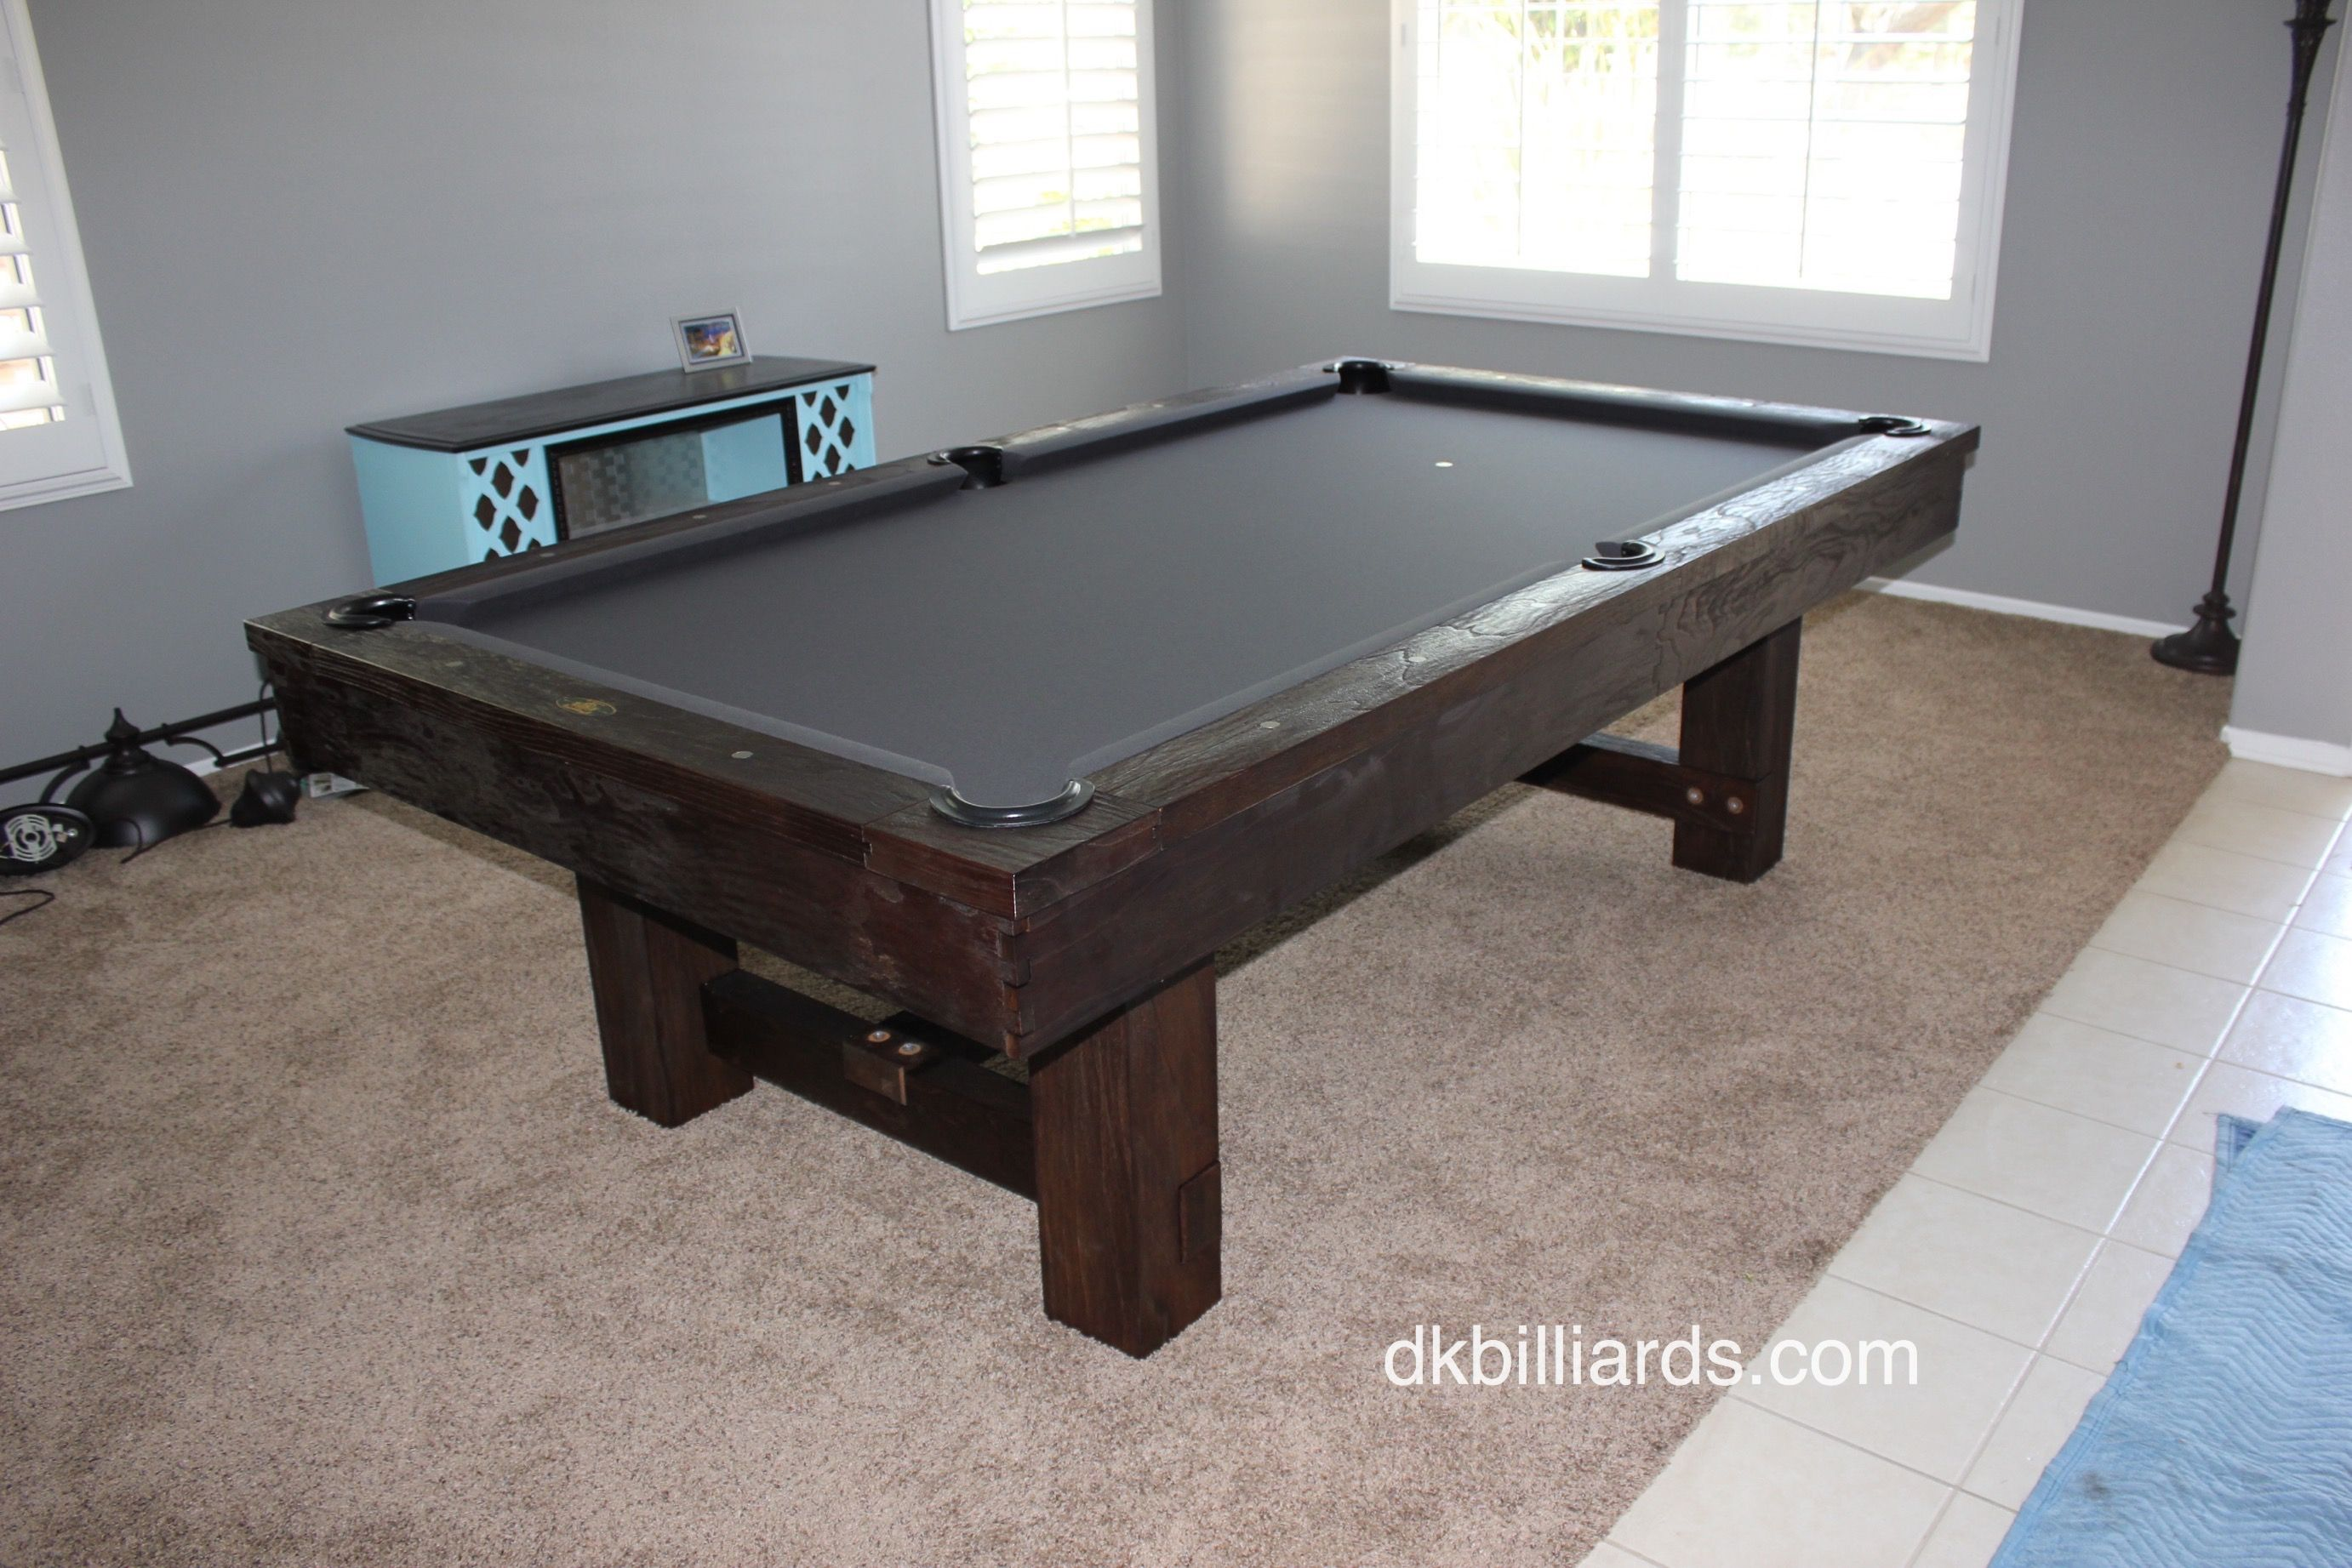 Pottery Barn Style Rustic Pool Table Rustic Pool Tables - Pool table movers orange county